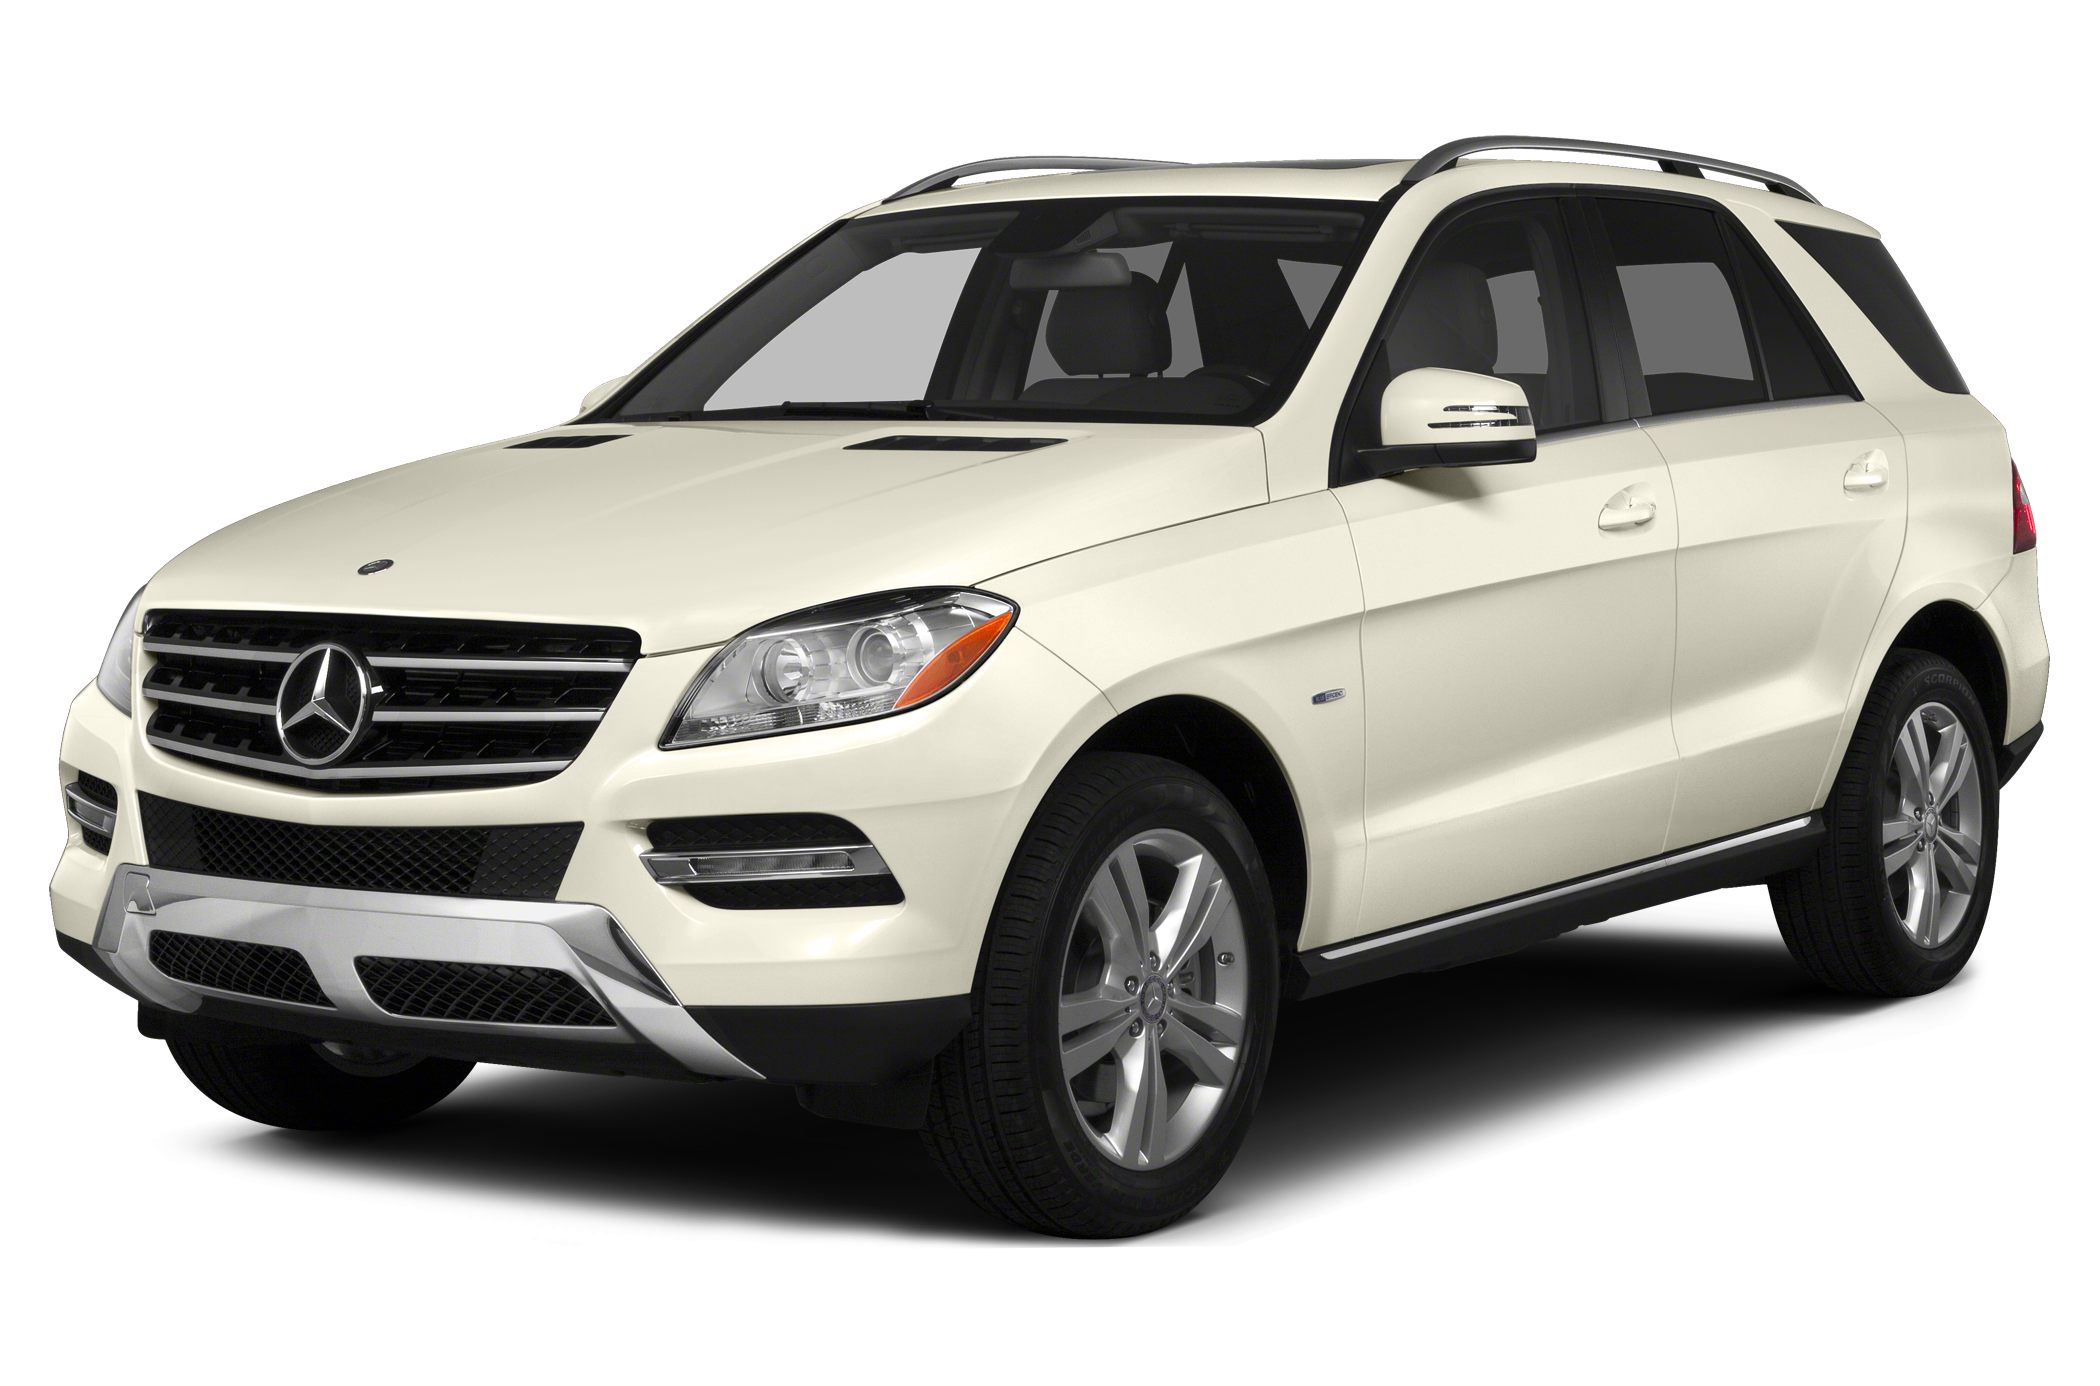 USC20MBS081A021001 Cool Review About 2012 Mercedes Ml350 Bluetec